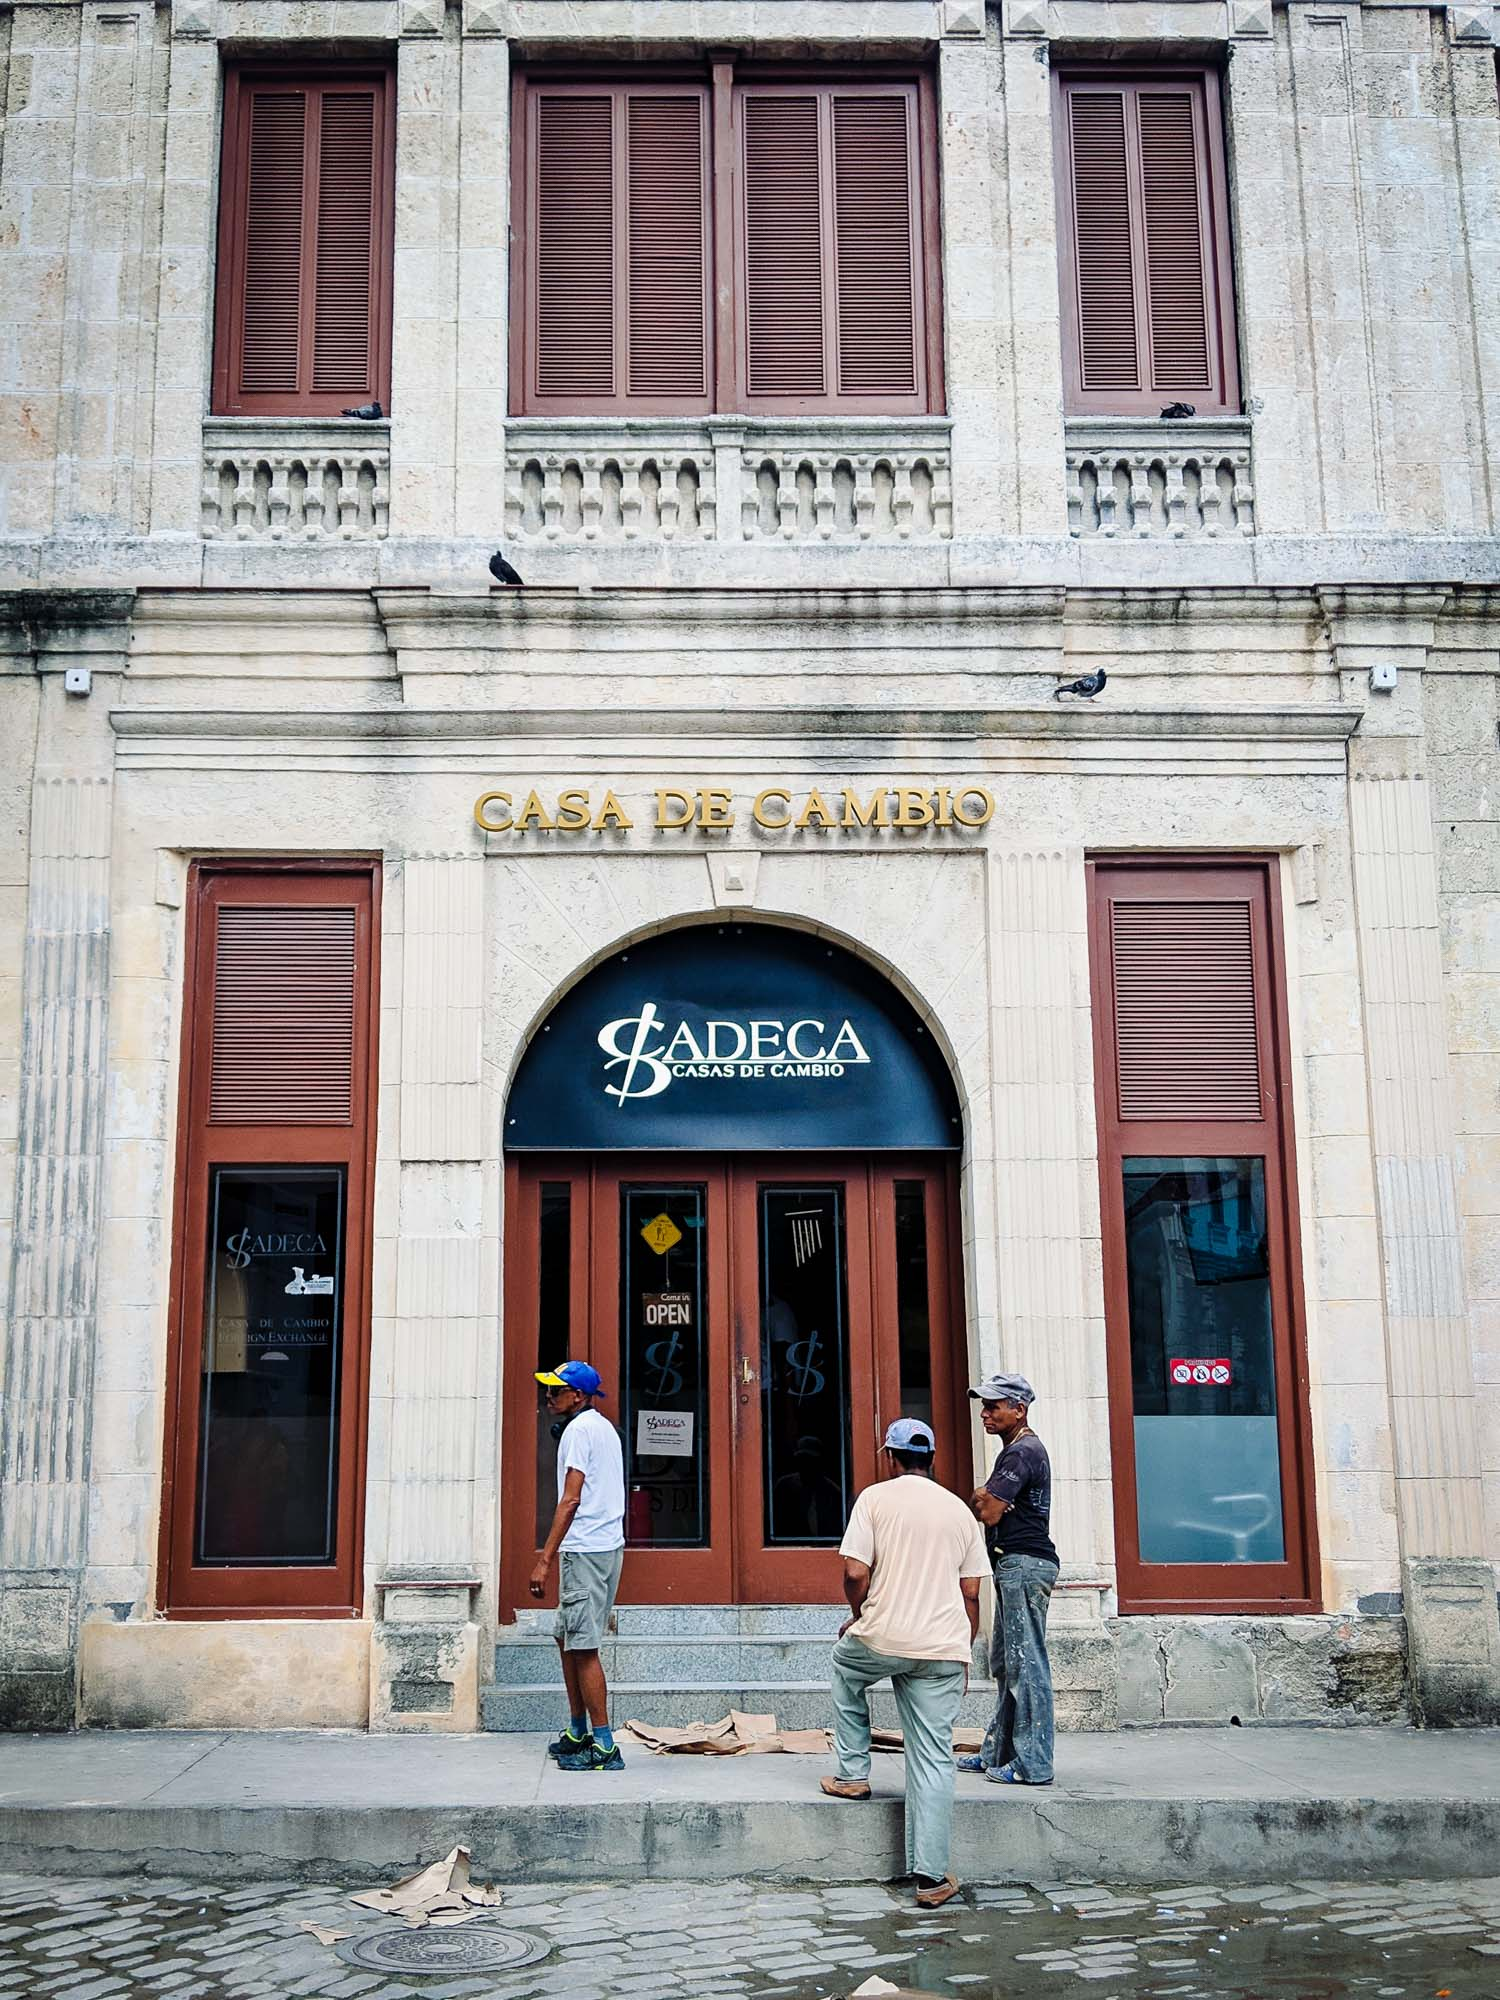 You can exchange money for Cuban currency at a Cadeca or Cuban money exchange house in Havana.